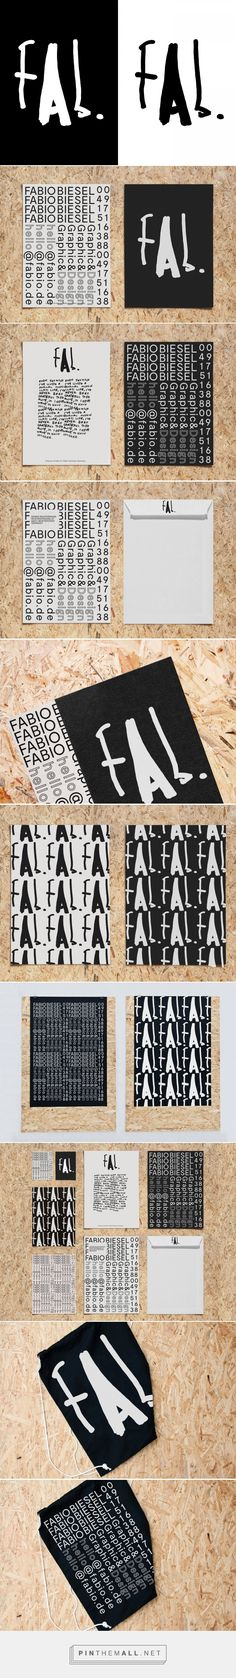 Fab. Design Graphic Artist Branding by Fabio Biesel | Fivestar Branding Agency – Design and Branding Agency & Curated Inspiration Gallery